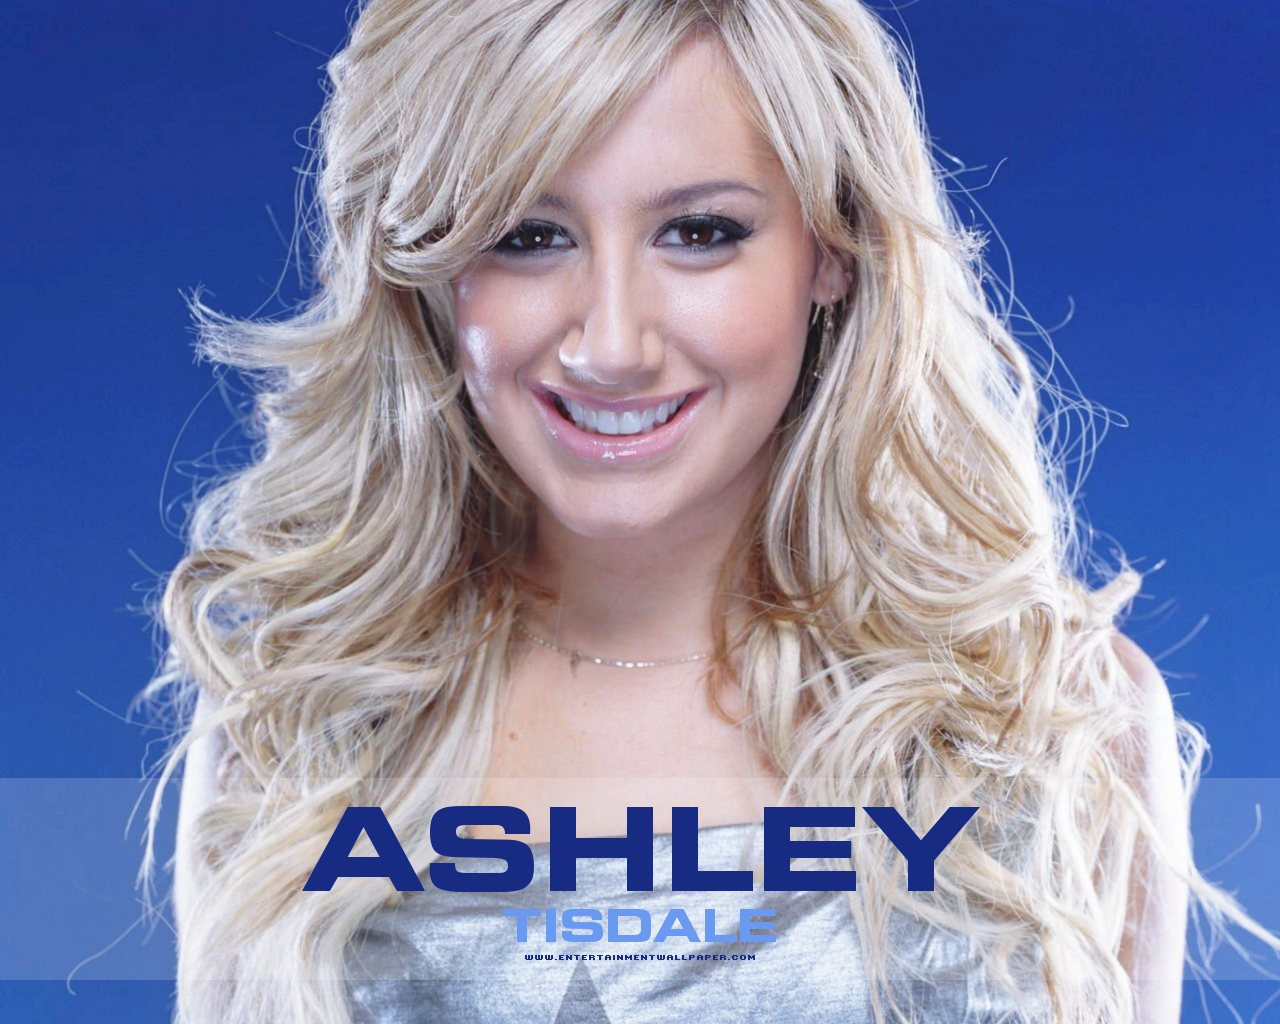 http://4.bp.blogspot.com/-1KbkhOB8IM0/T3frB8imFvI/AAAAAAAAEKU/b4vzAtflJPY/s1600/Ashley-Tisdale-wallpapers-02.jpg